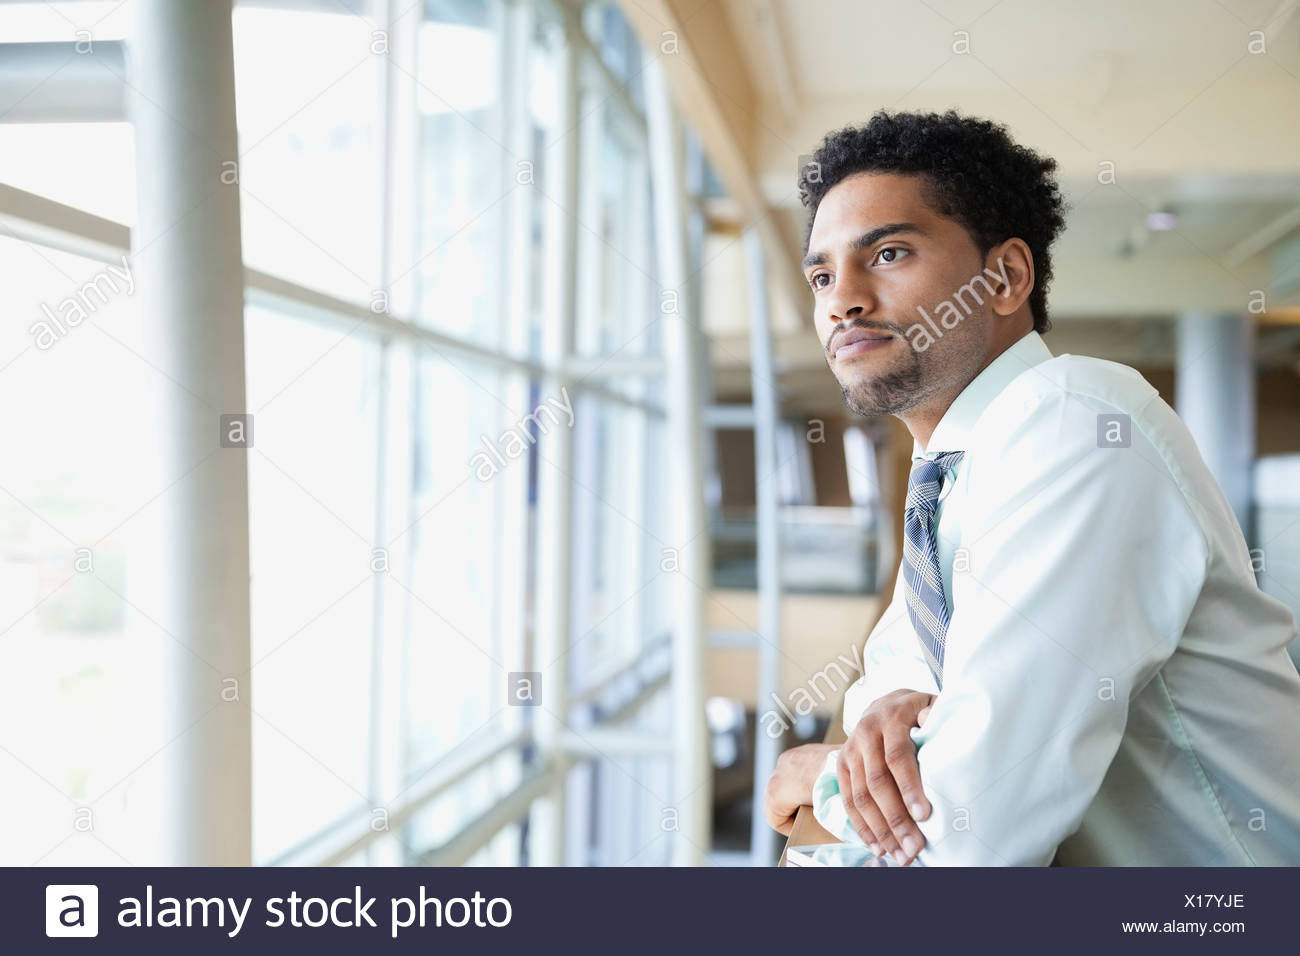 side view of businessman leaning on railing stock photo 276155894